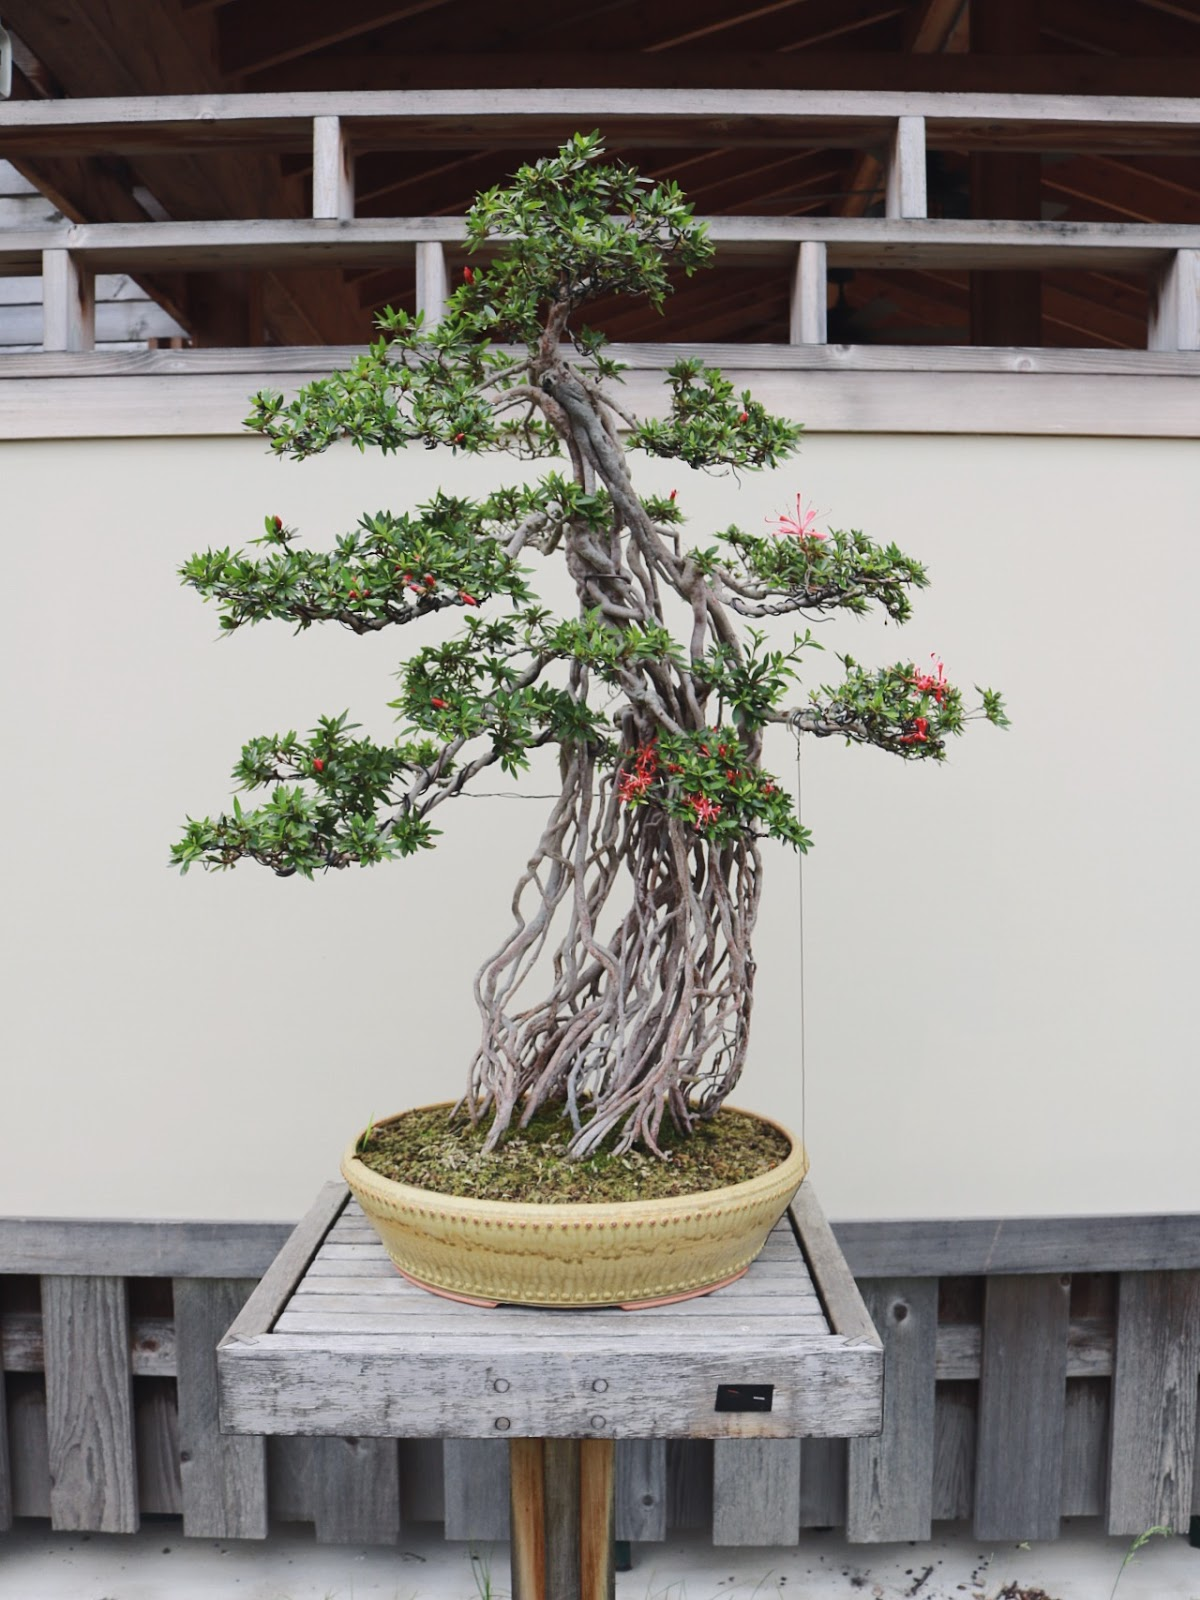 Not That I Thought Bonsai Trees Were A Myth But Guess Have Never Seen One In Real Life Or Knew There So Many Varieties They Are Literally